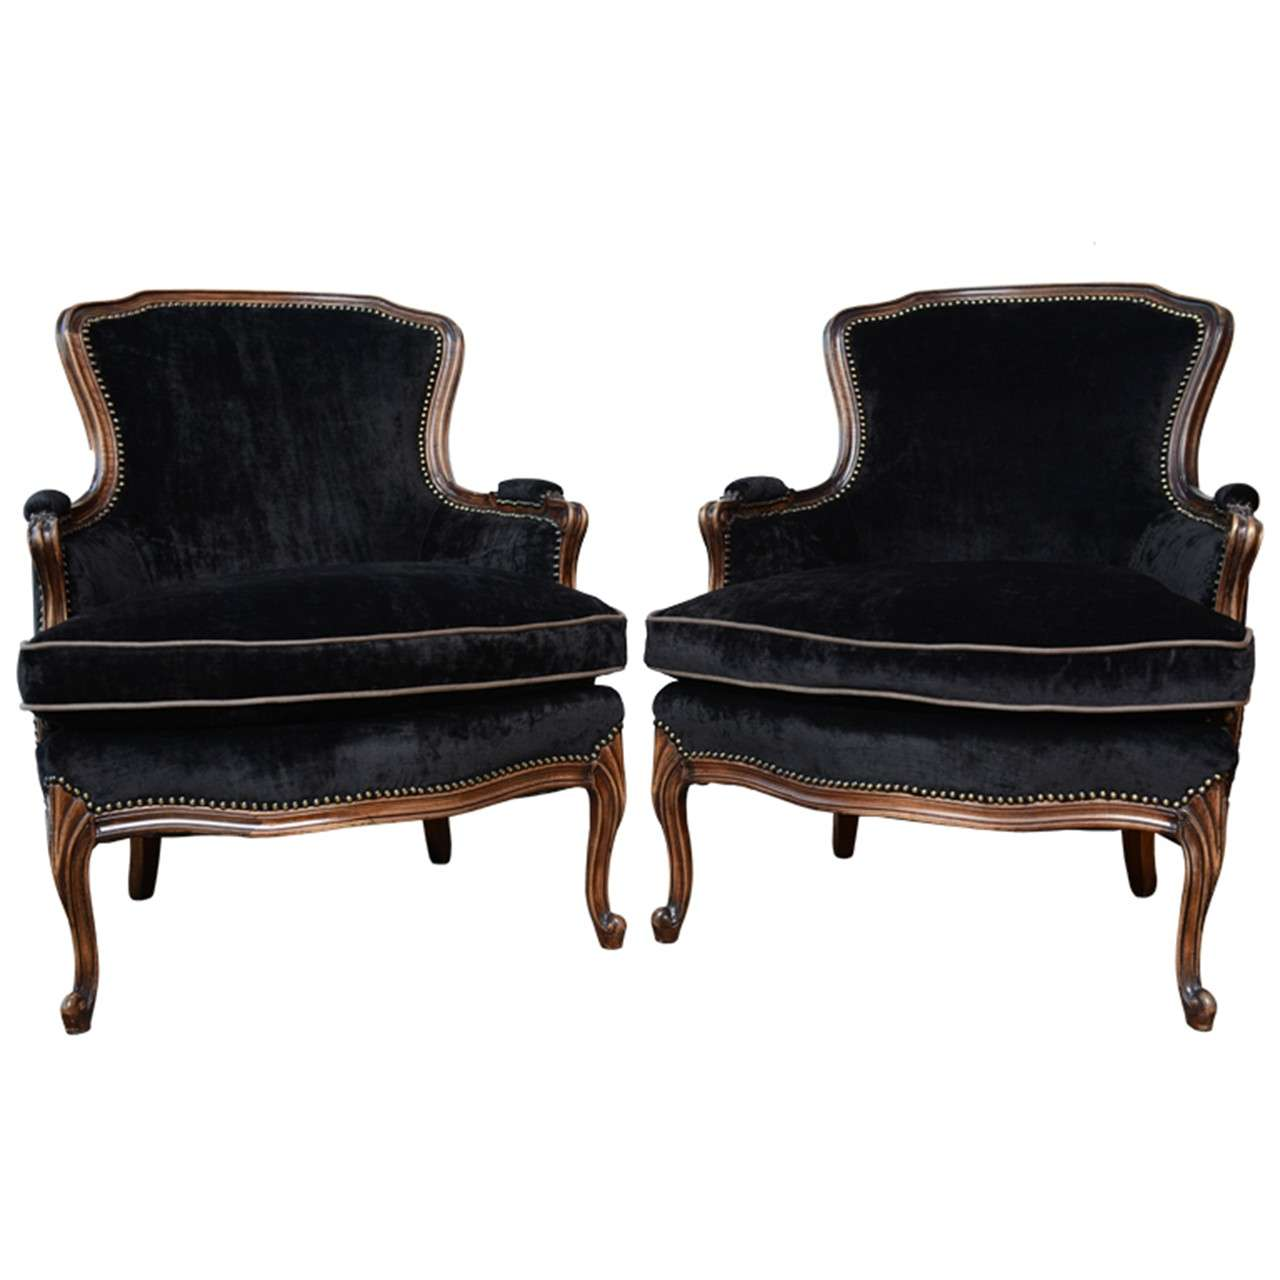 French Vintage Pair of Louis XV Bergere Chairs at 1stdibs